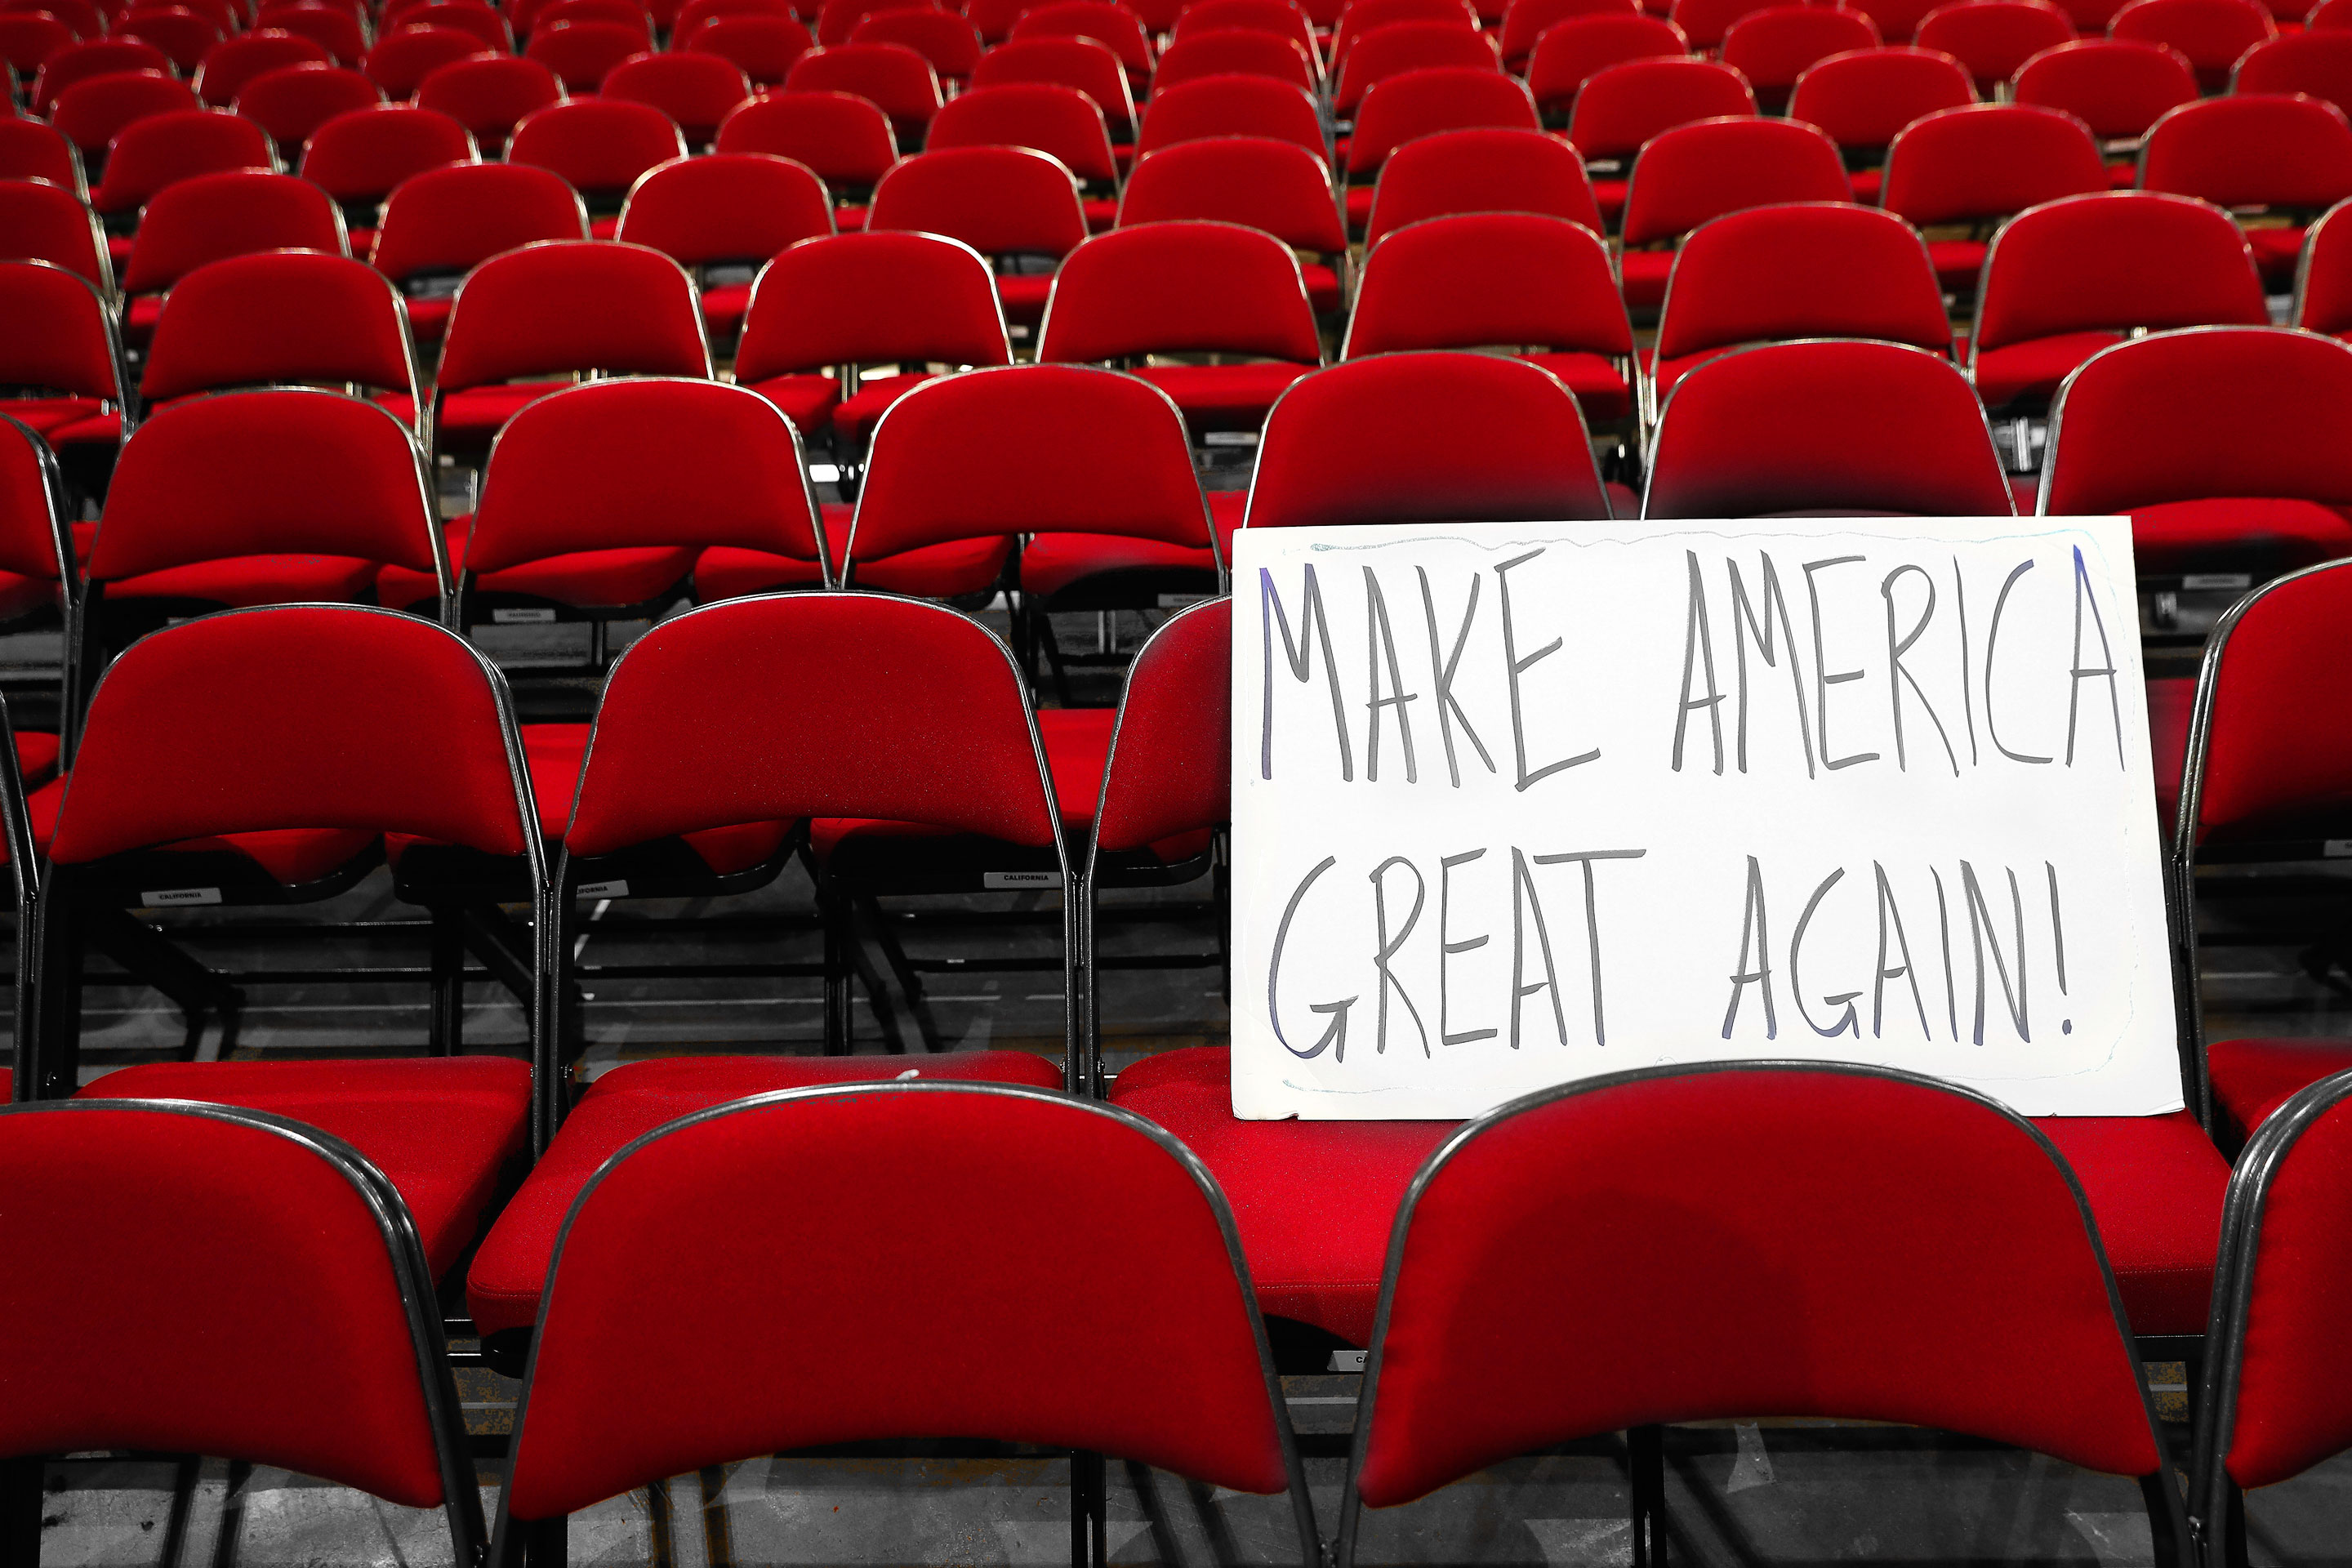 A sign at the Republican National Convention on July 20, 2016.